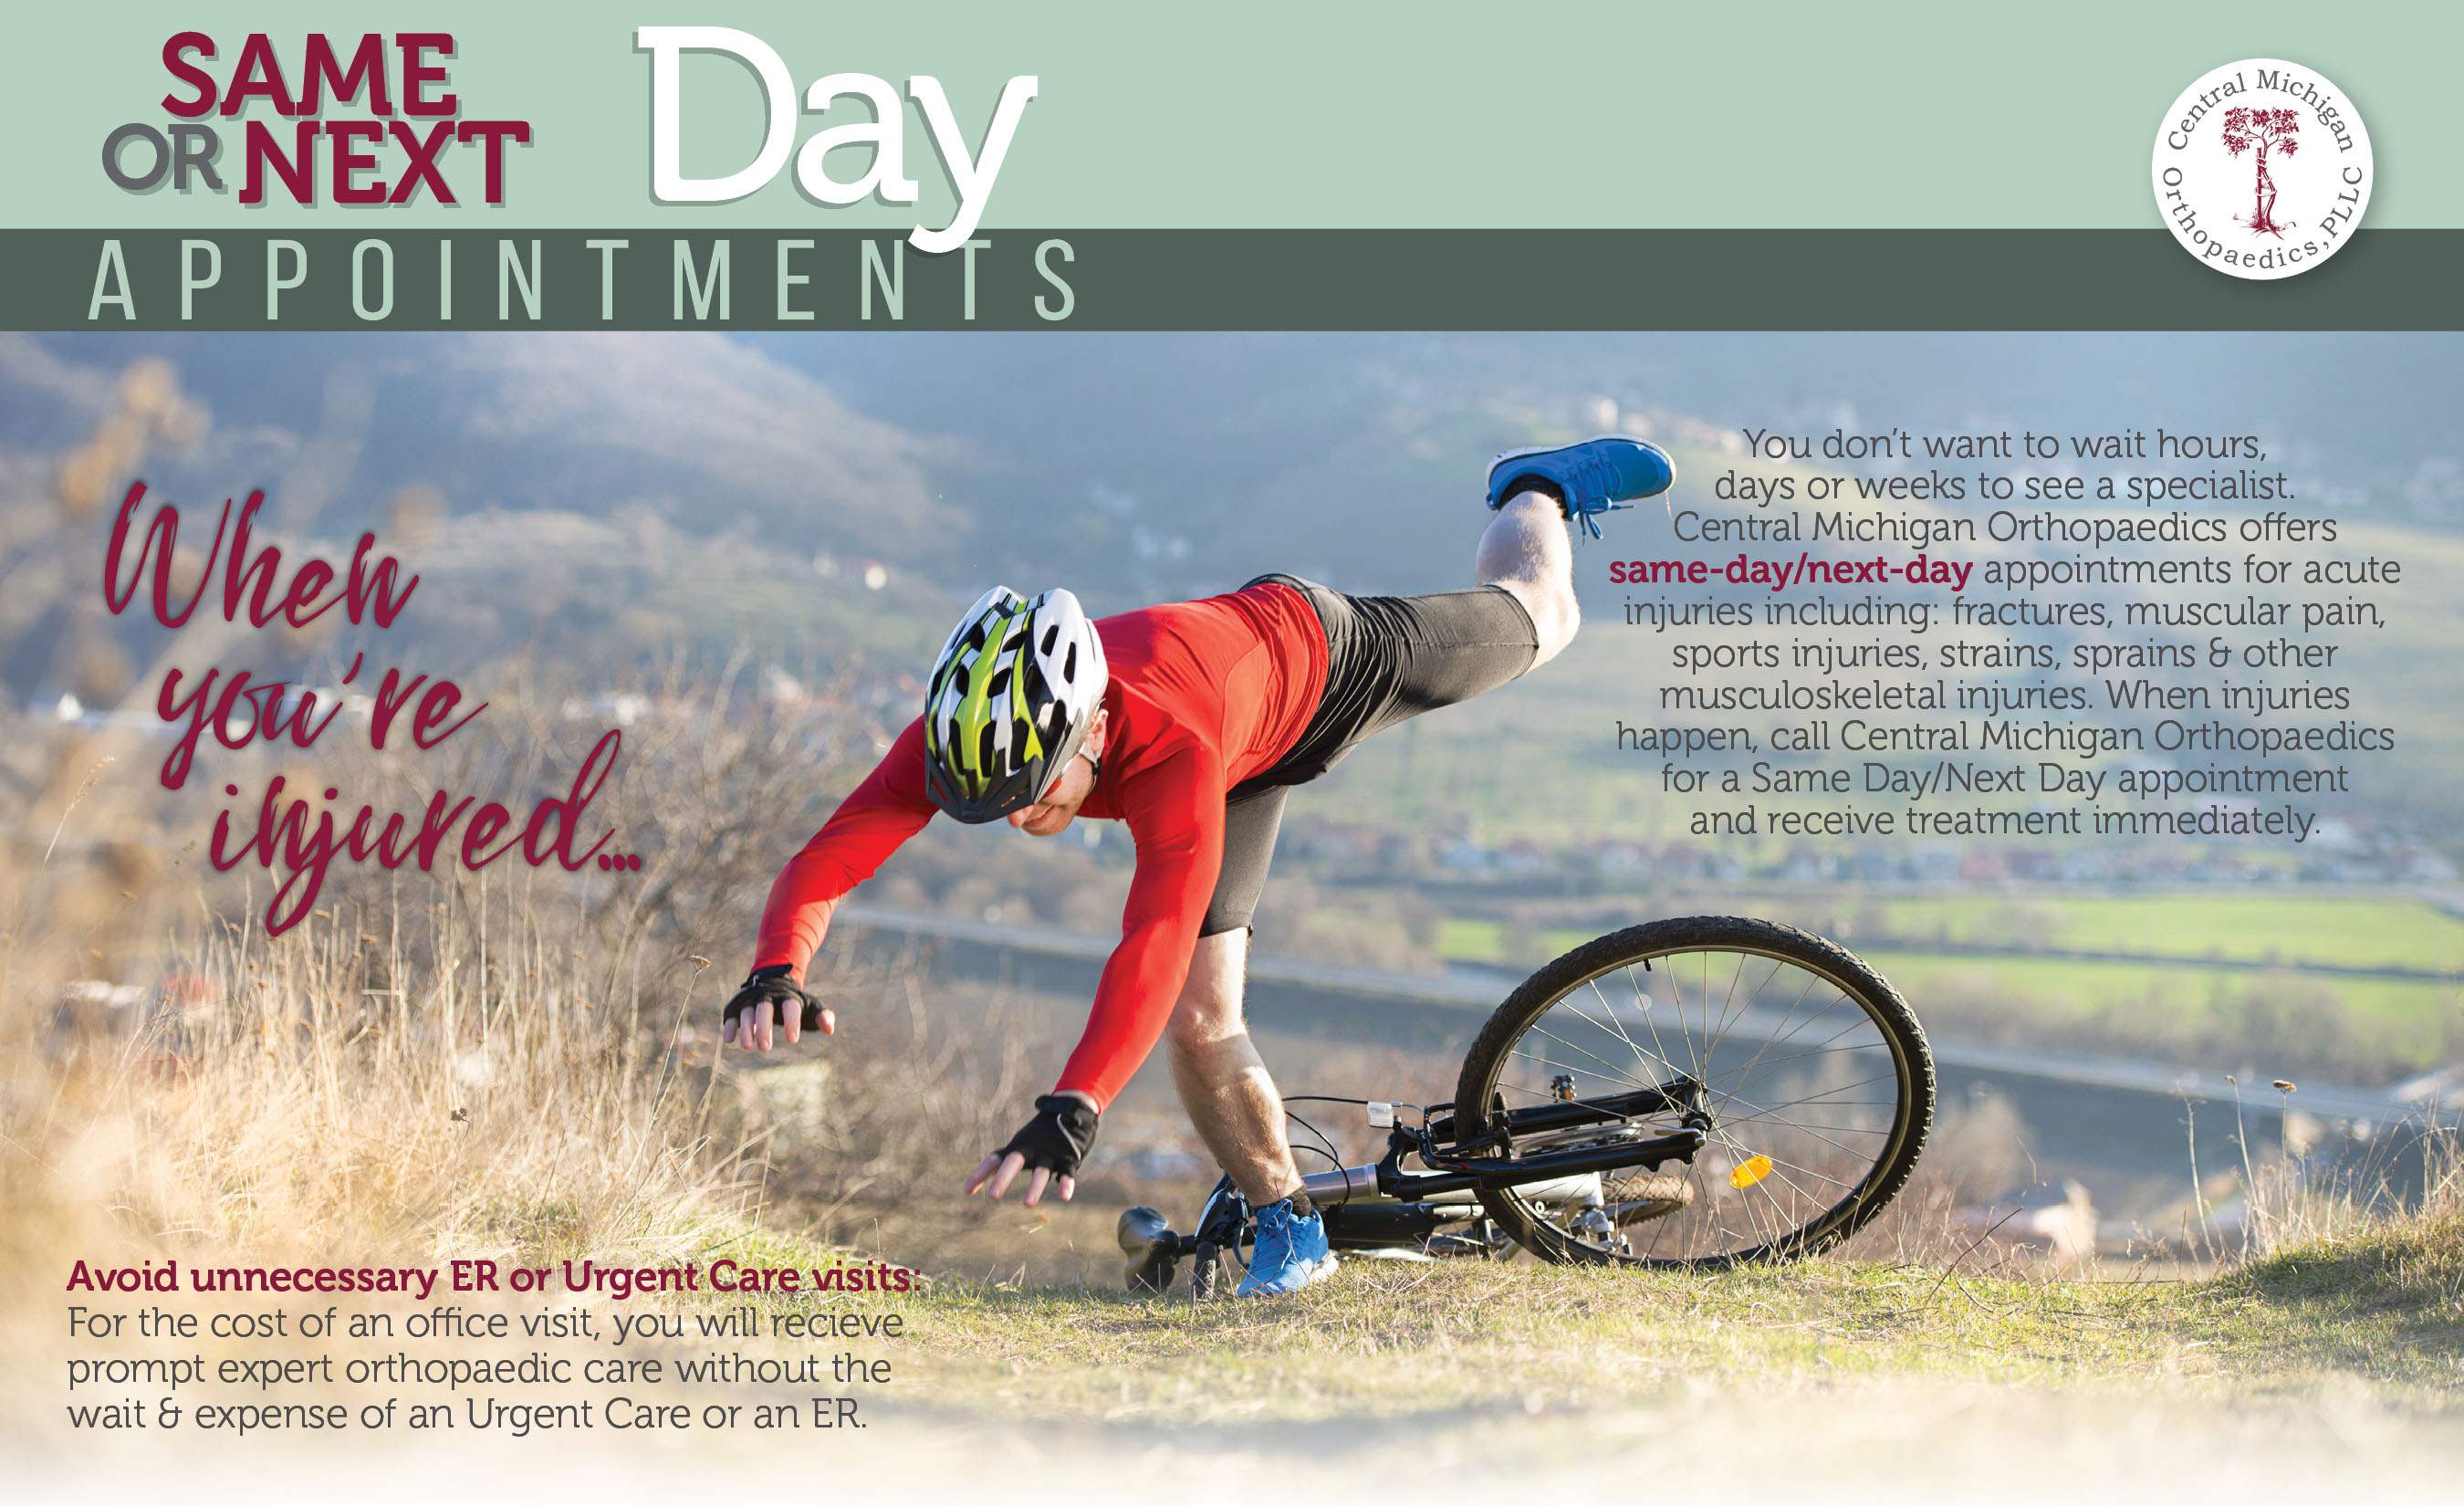 Same Day Walk-in Appointments available at Central Michigan Orthopaedics